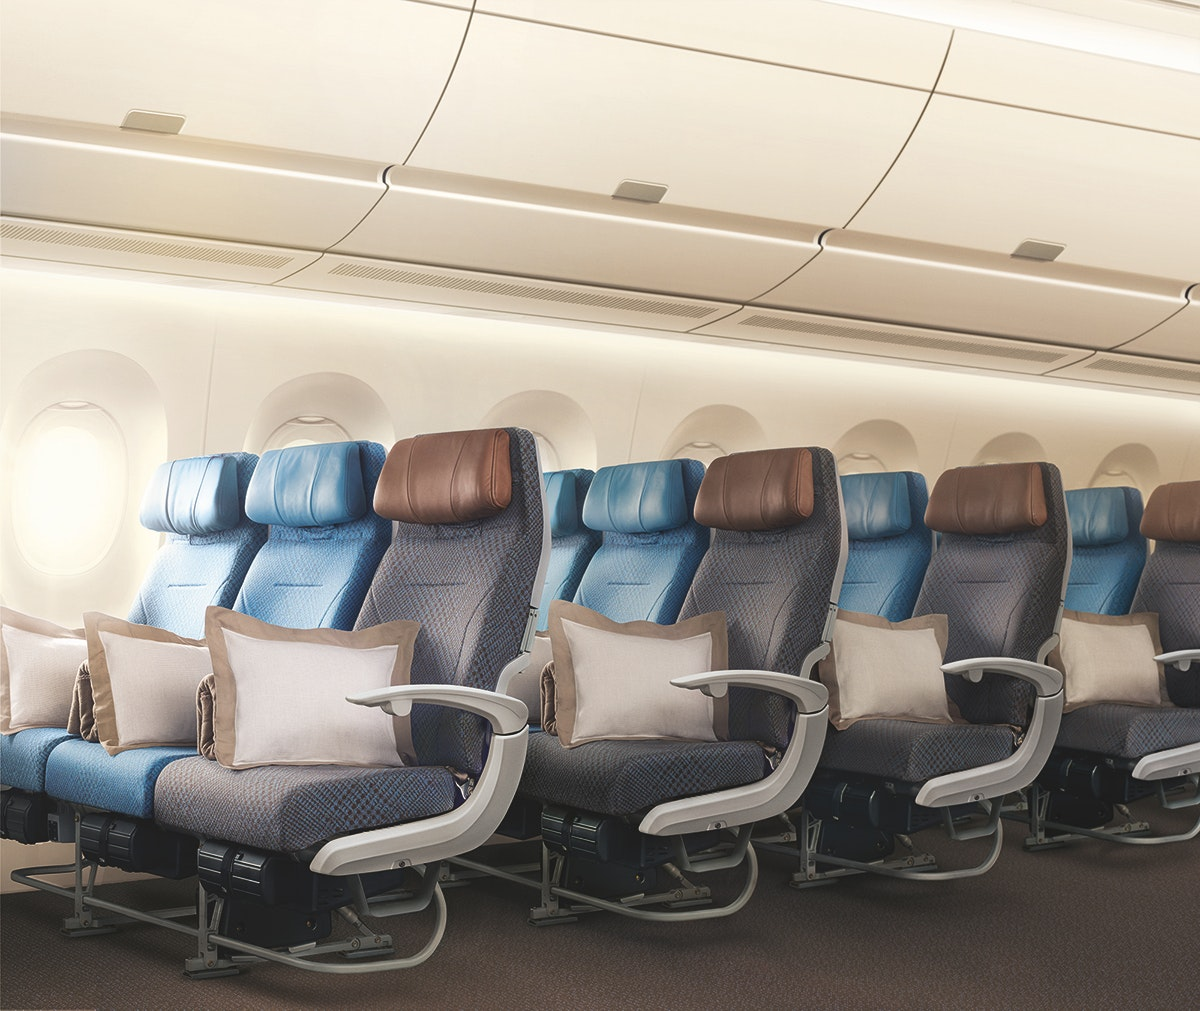 Higher ceilings and trick LED lighting help make the cabin of Singapore Airlines's Airbus A350 more pleasant.